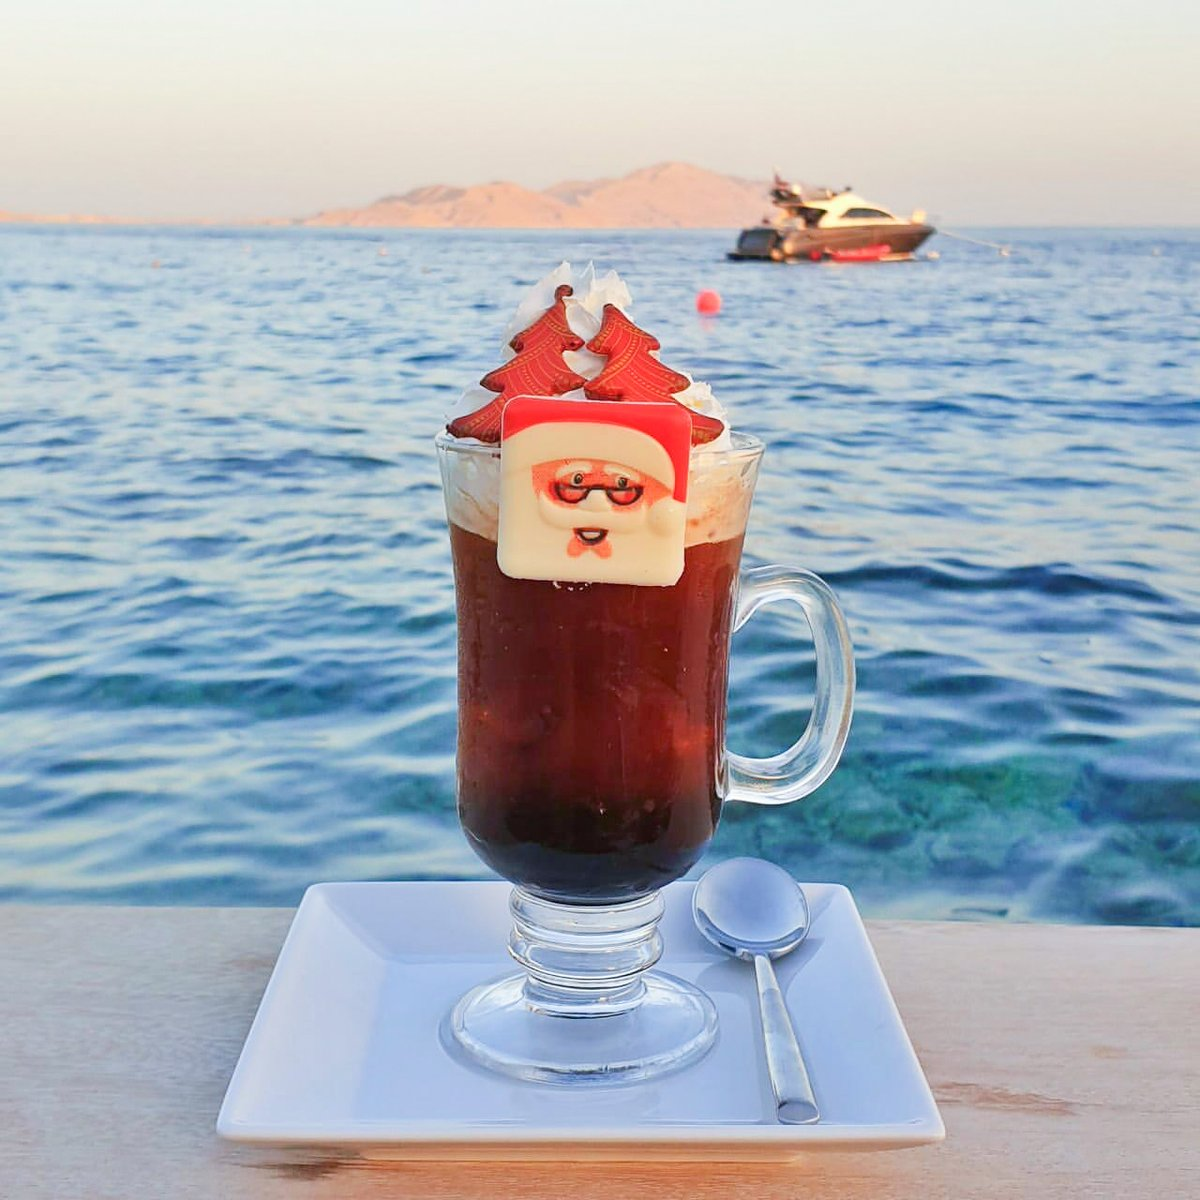 Mischievous mixologists at @FSSharmElSheikh bring the #FSHoliday spirit to life with world-class cocktails at Citadel and Nafoura Lounges. #FSSharmElSheikh #FourSeasons https://t.co/BXdcCEnPNt